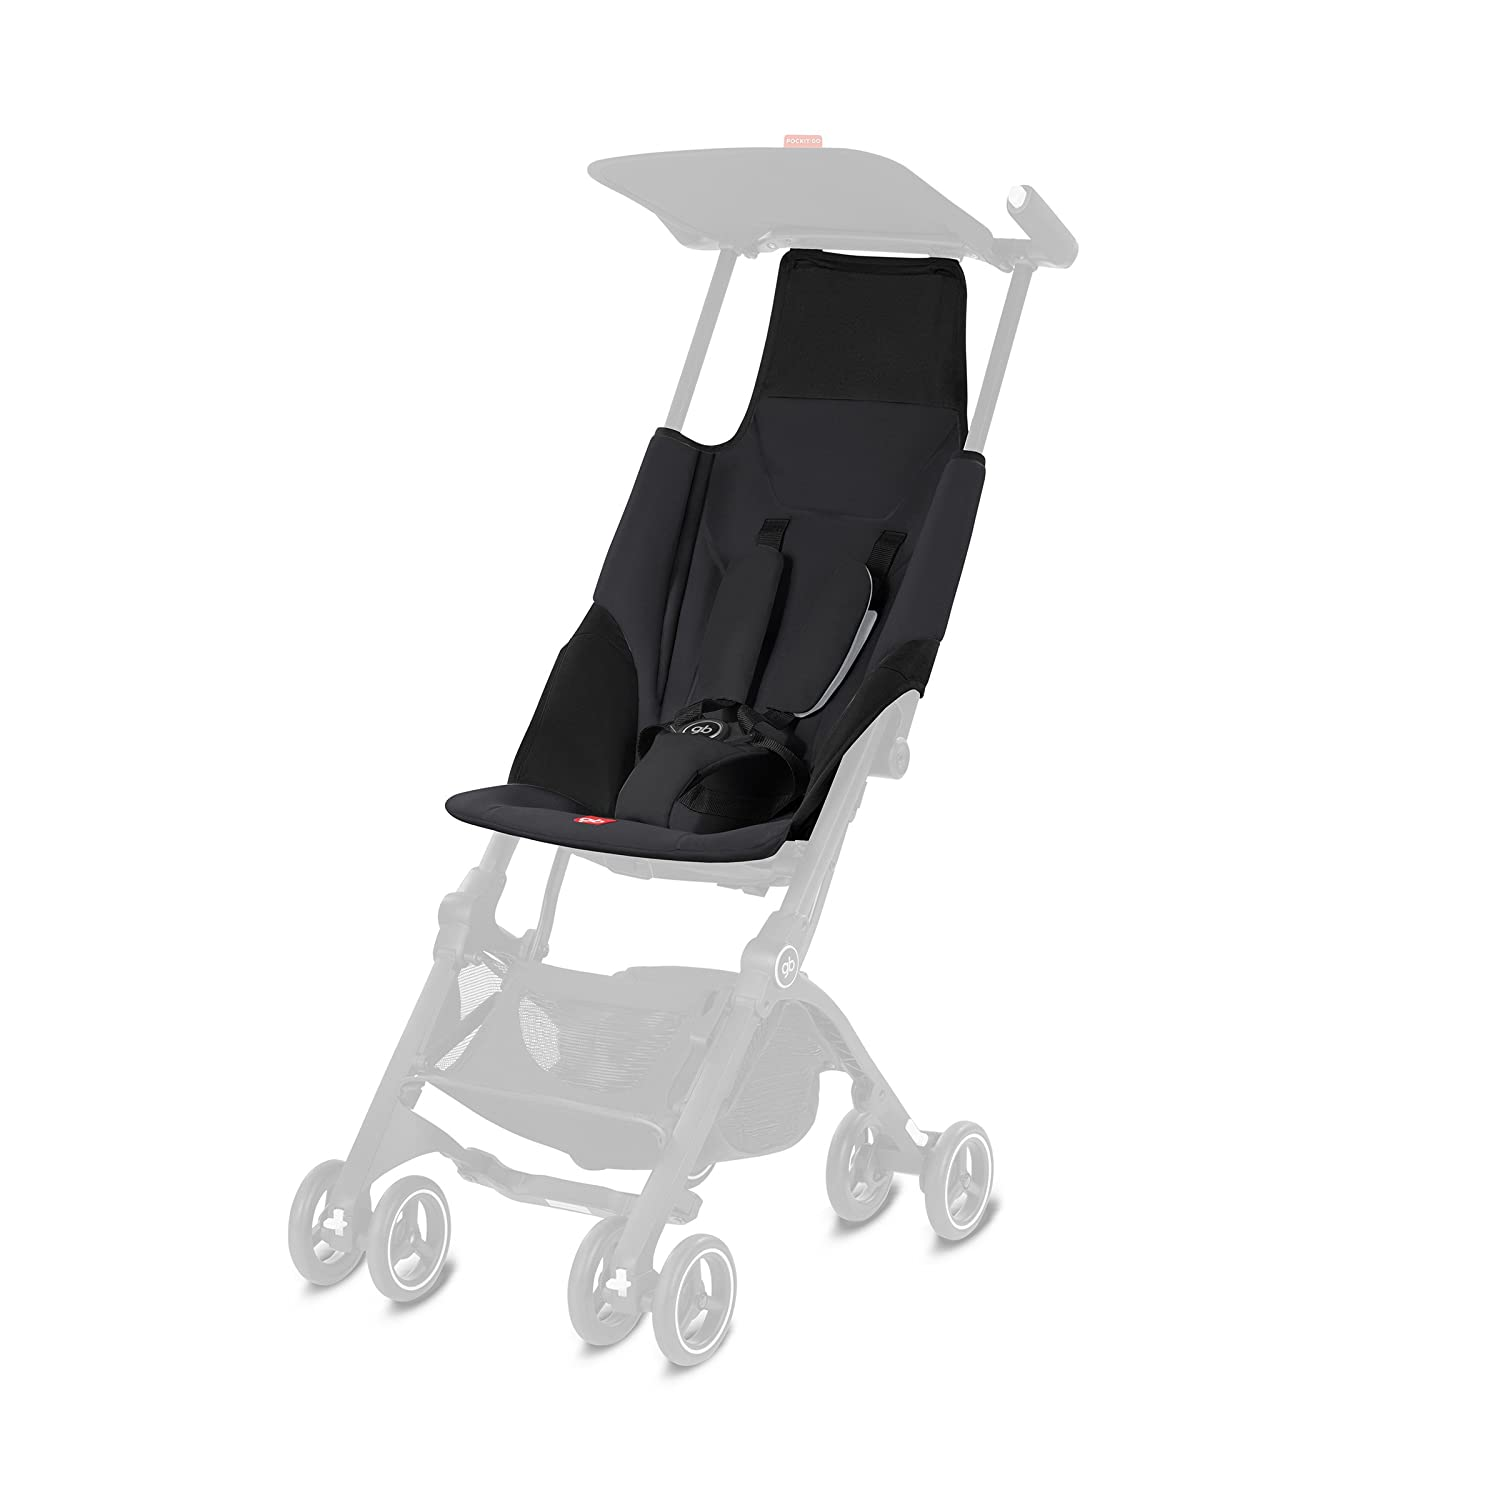 gb Pockit Go Fabric Kit, Satin Black Cybex 618000899